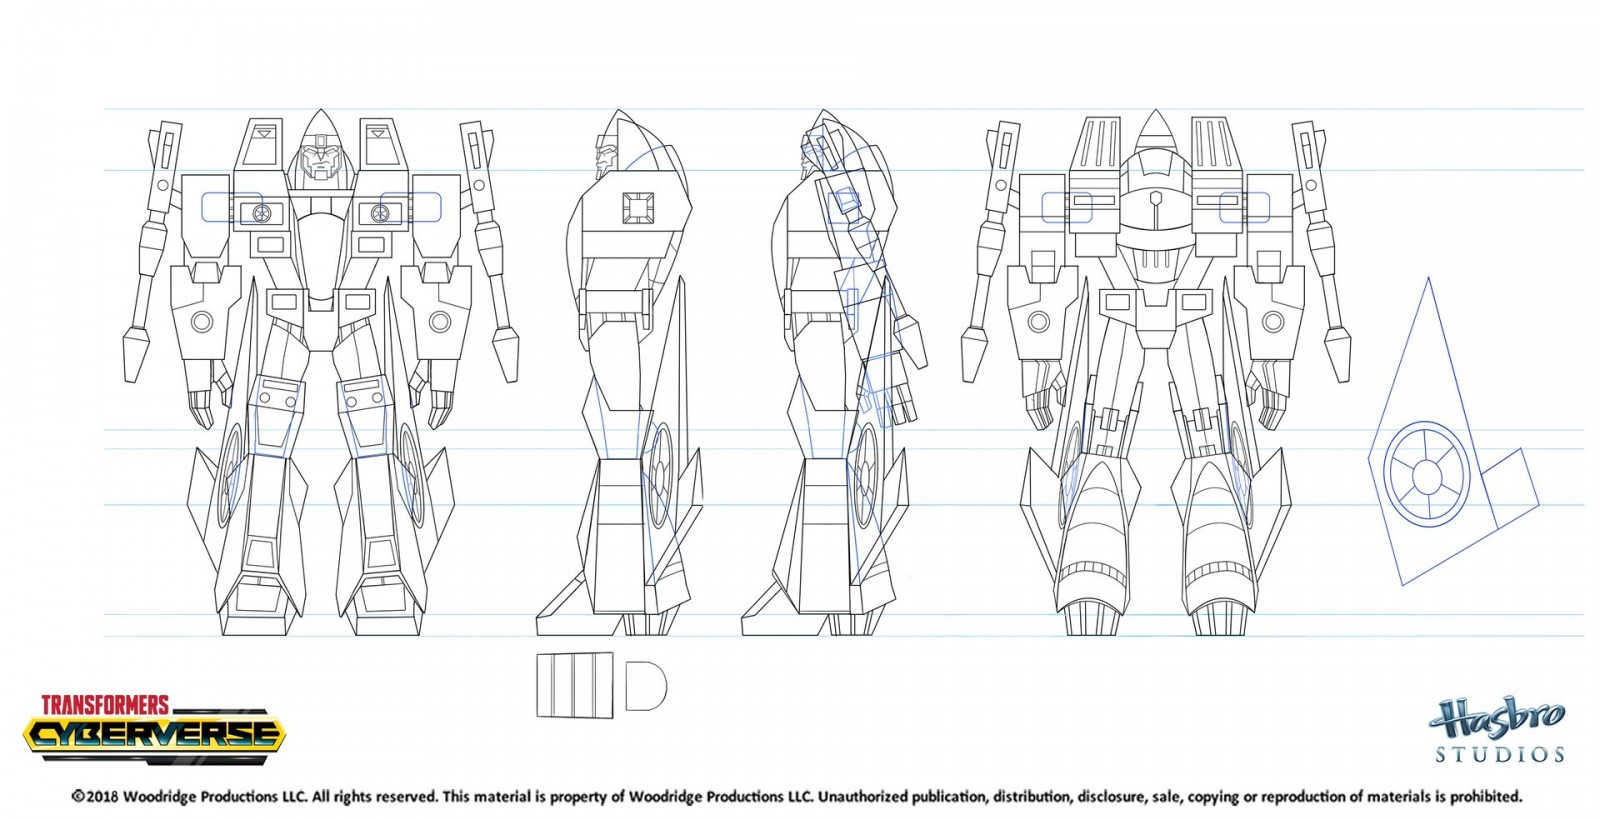 Transformers News: New Transformers Cyberverse Concept and Character Art